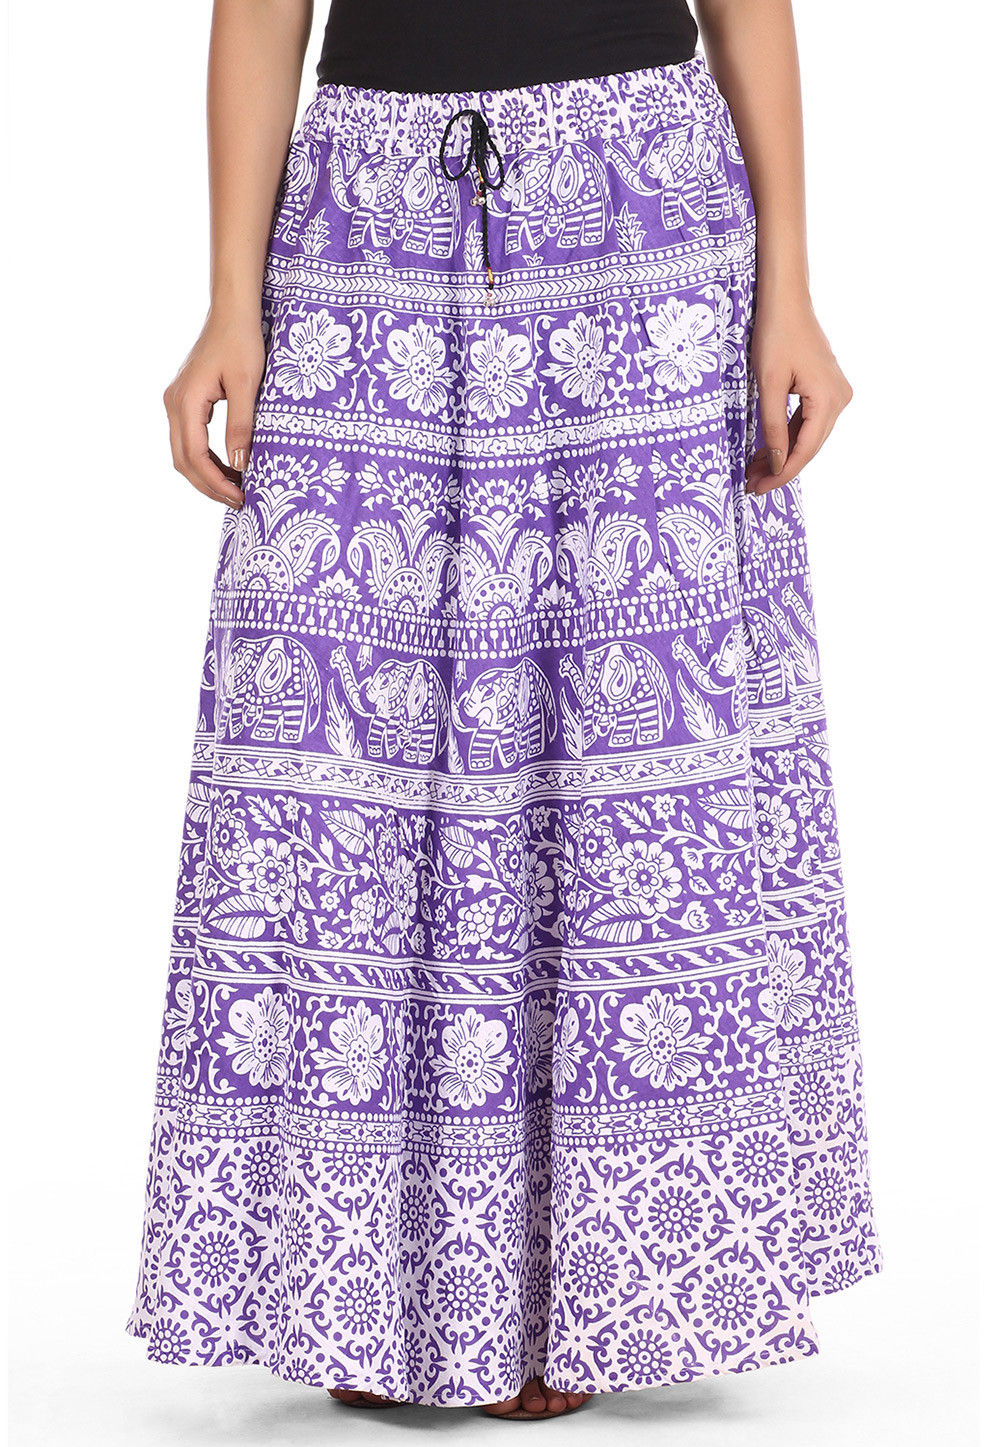 Printed Cotton Long Skirt in Purple and White